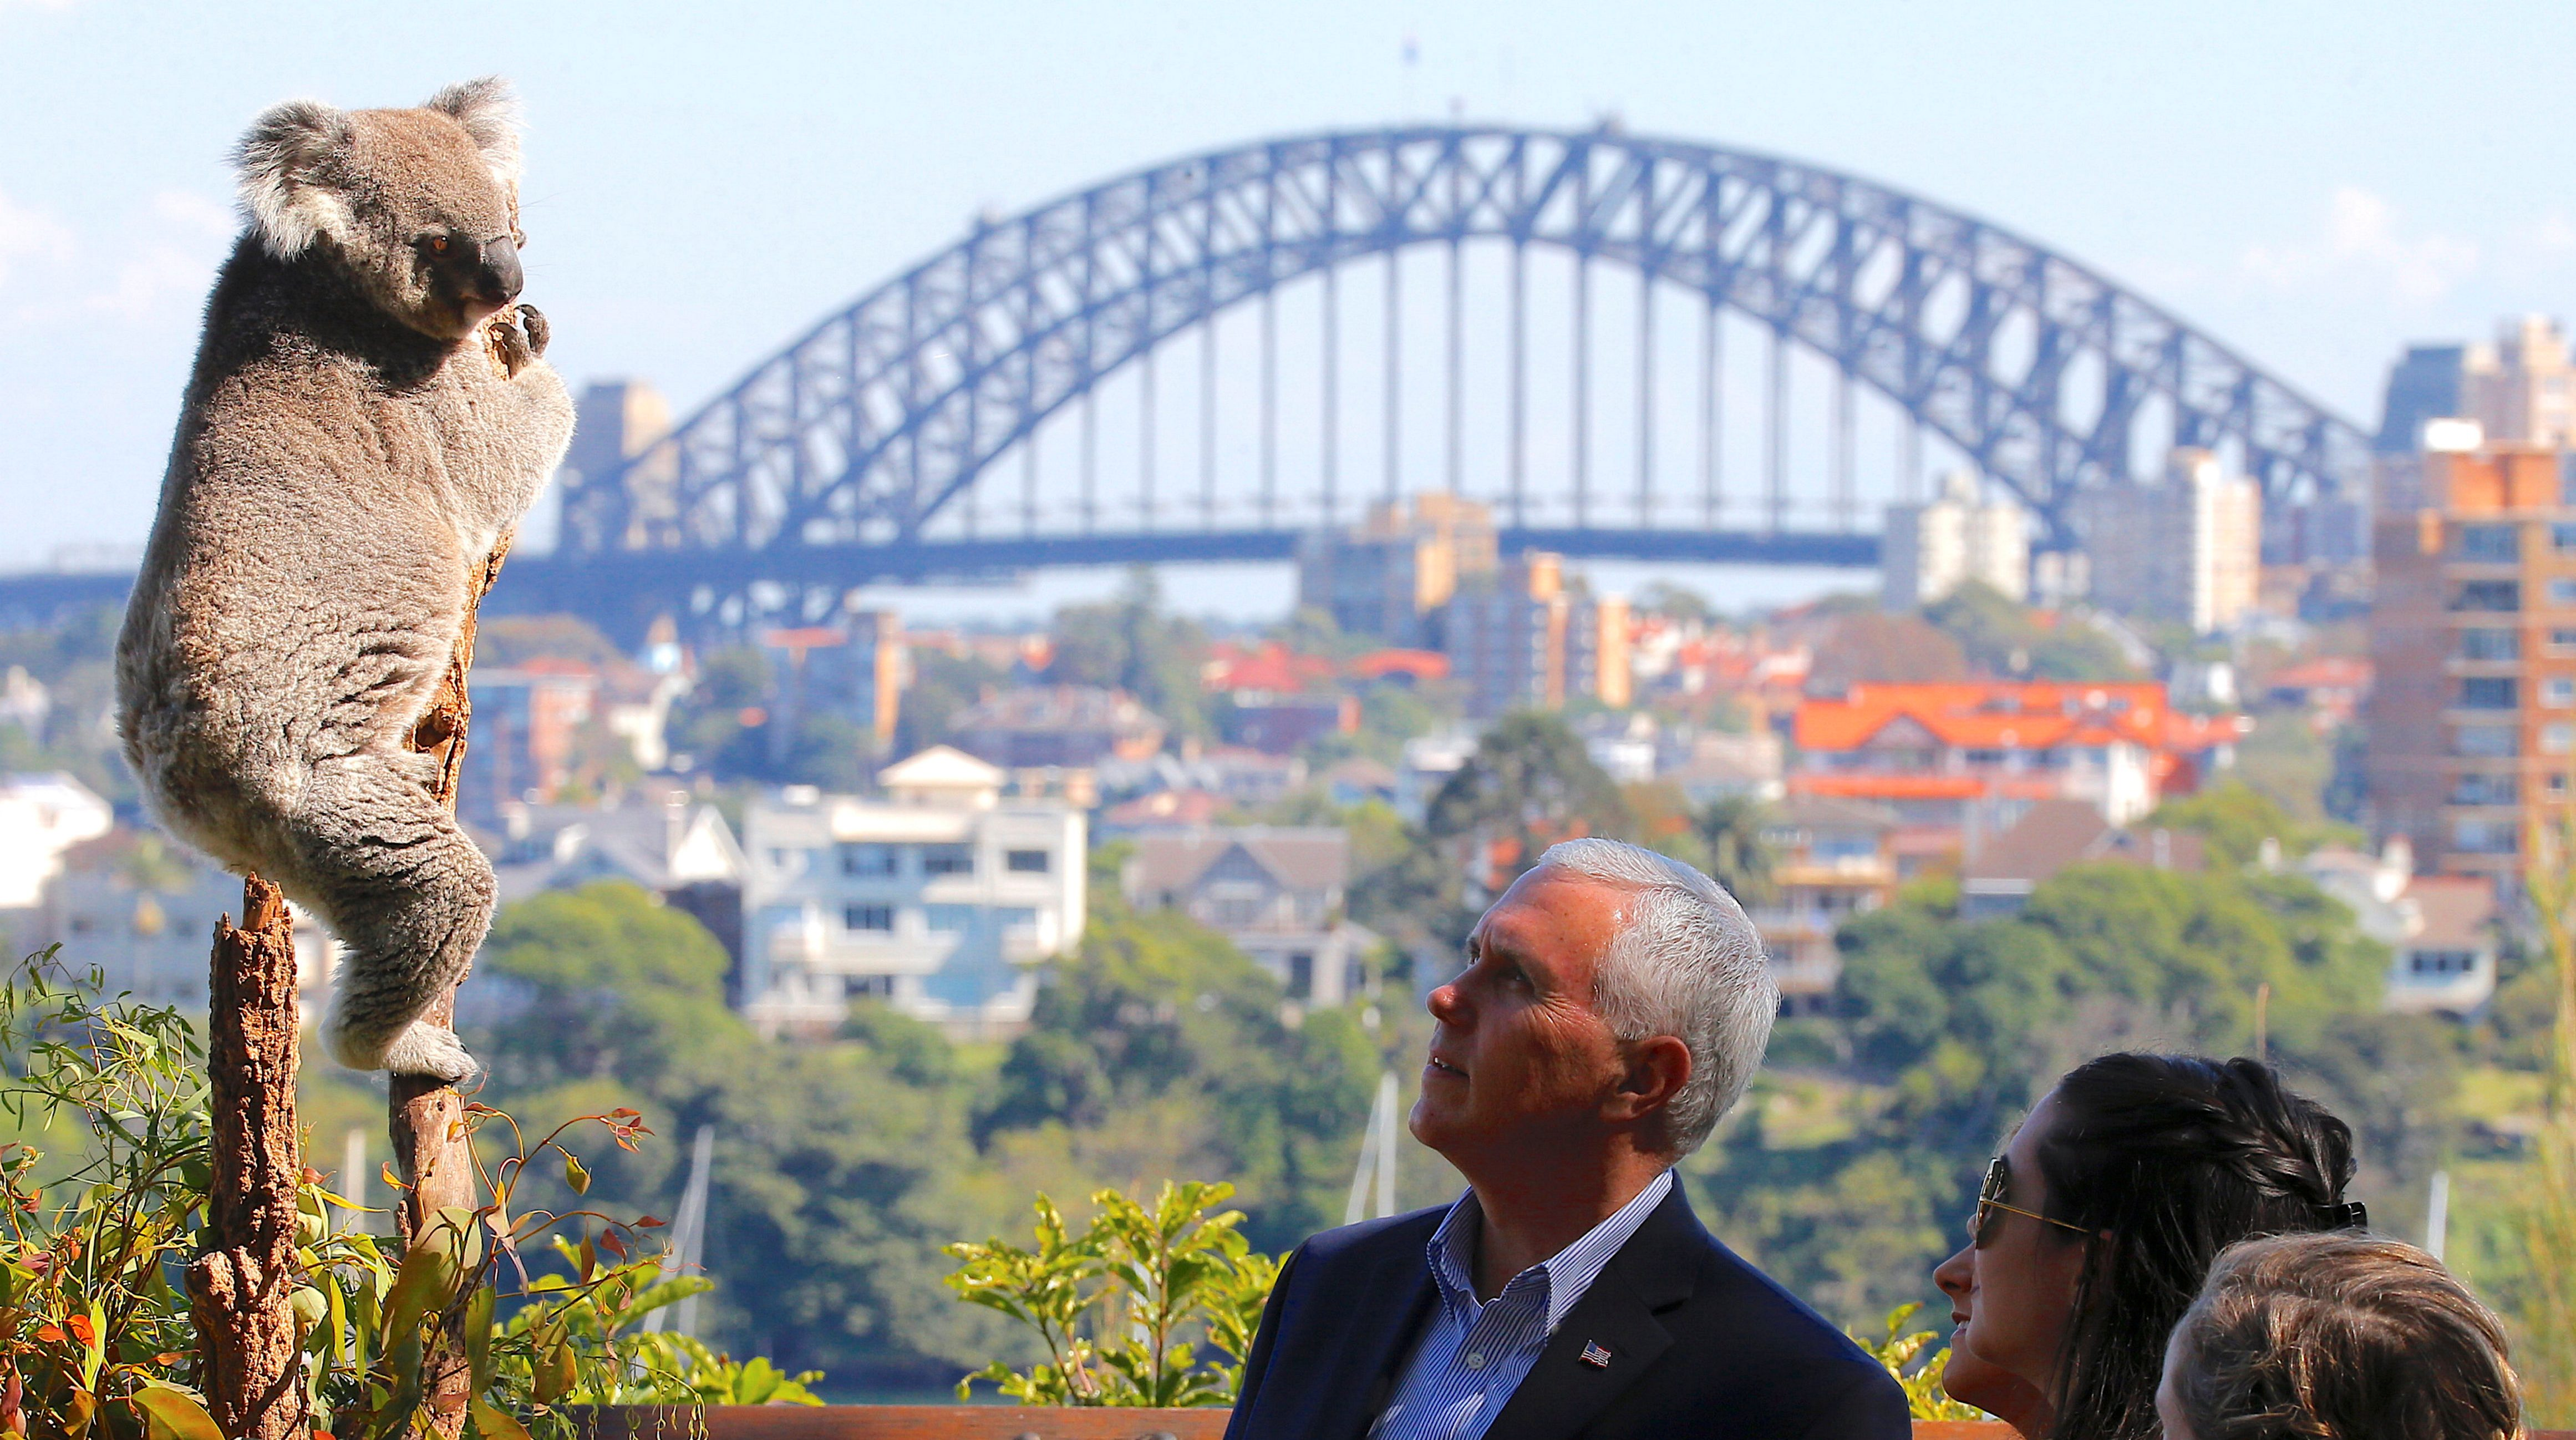 US vice president Mike Pence looks at a koala during a visit to Taronga Zoo in Sydney, Australia, April 23, 2017.